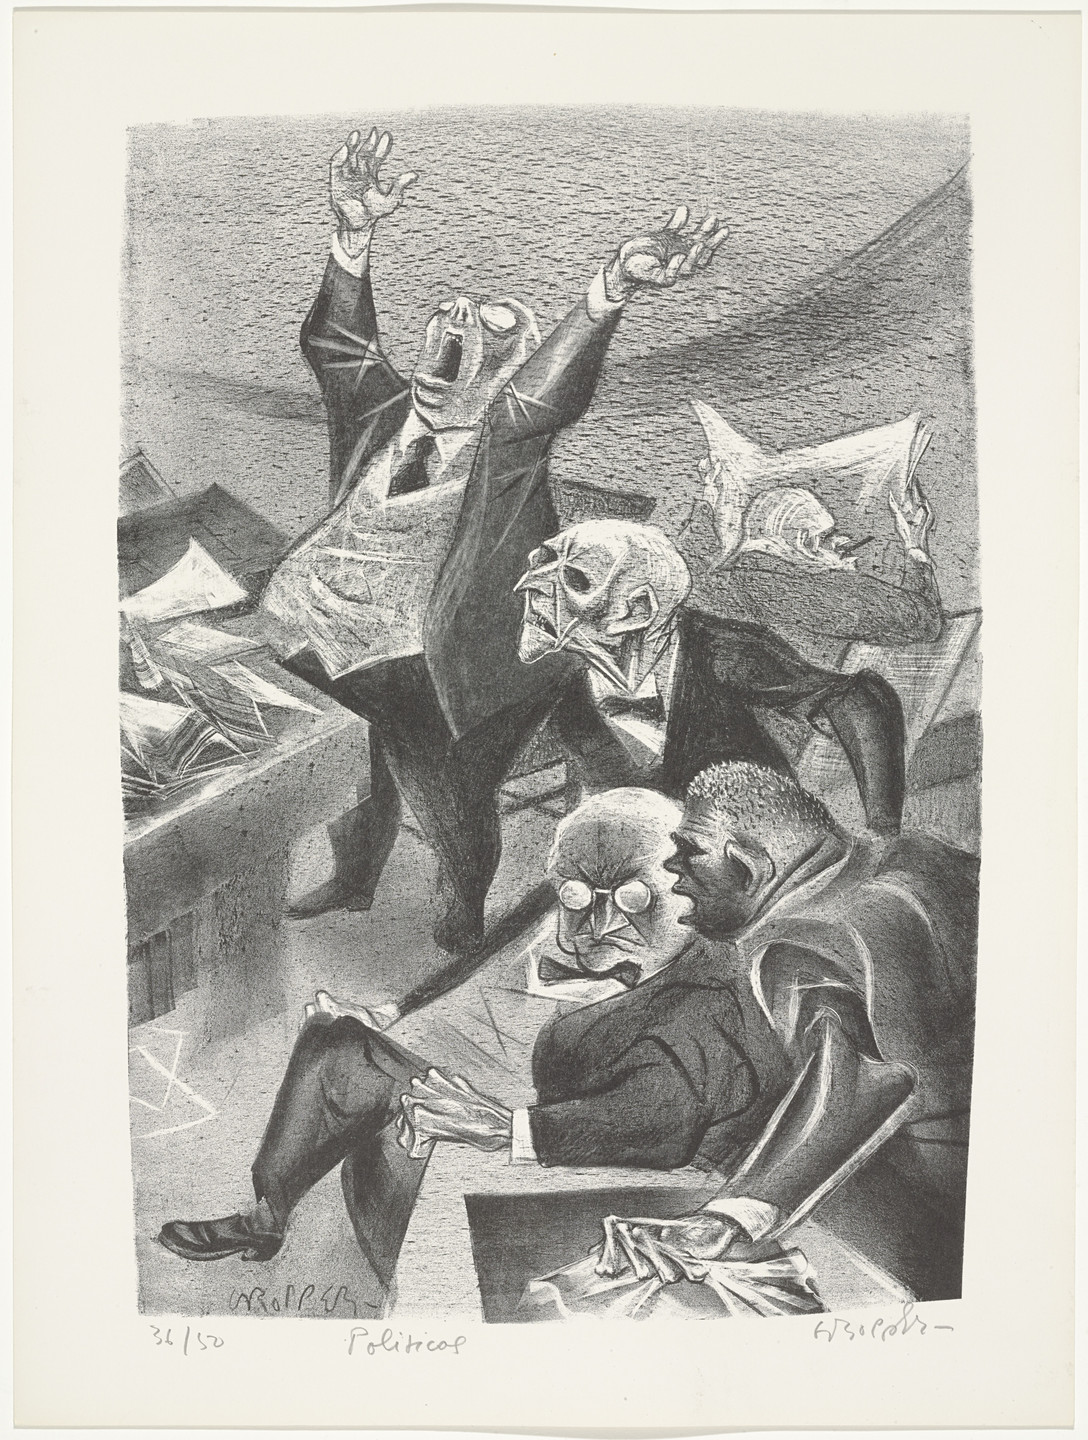 William Gropper. Politicos from Capriccios. 1953–57